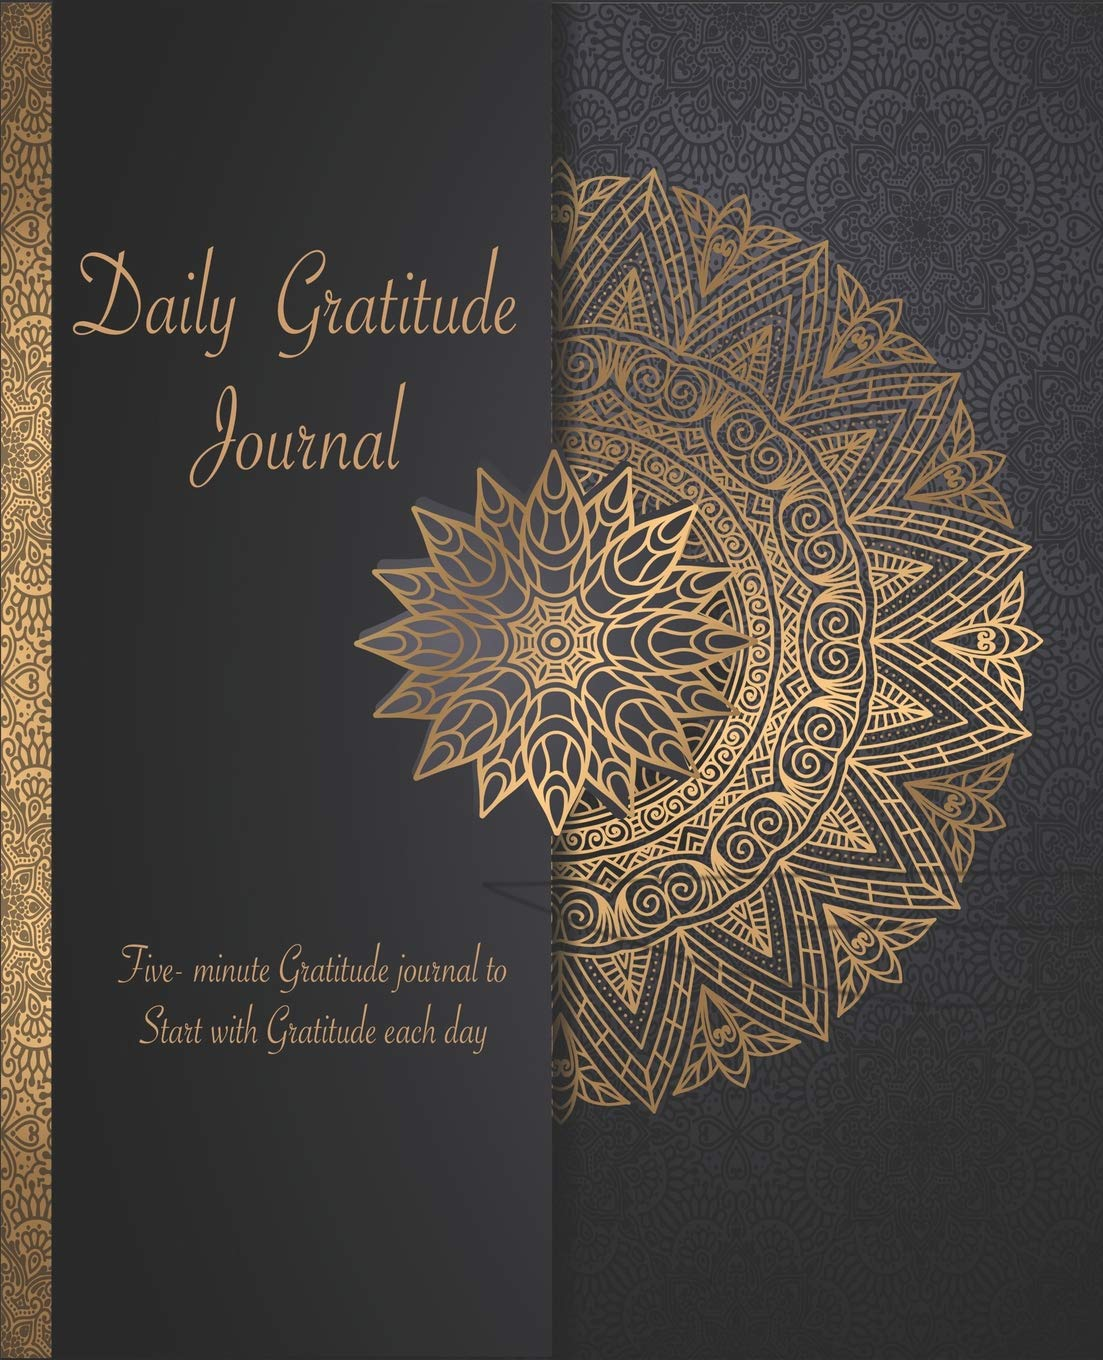 Daily Gratitude Journal: A Five Minute Gratitude Journal   52 week Positivity Diary to Cultivate an Attitude of Gratitude for Achieving fulfilled life